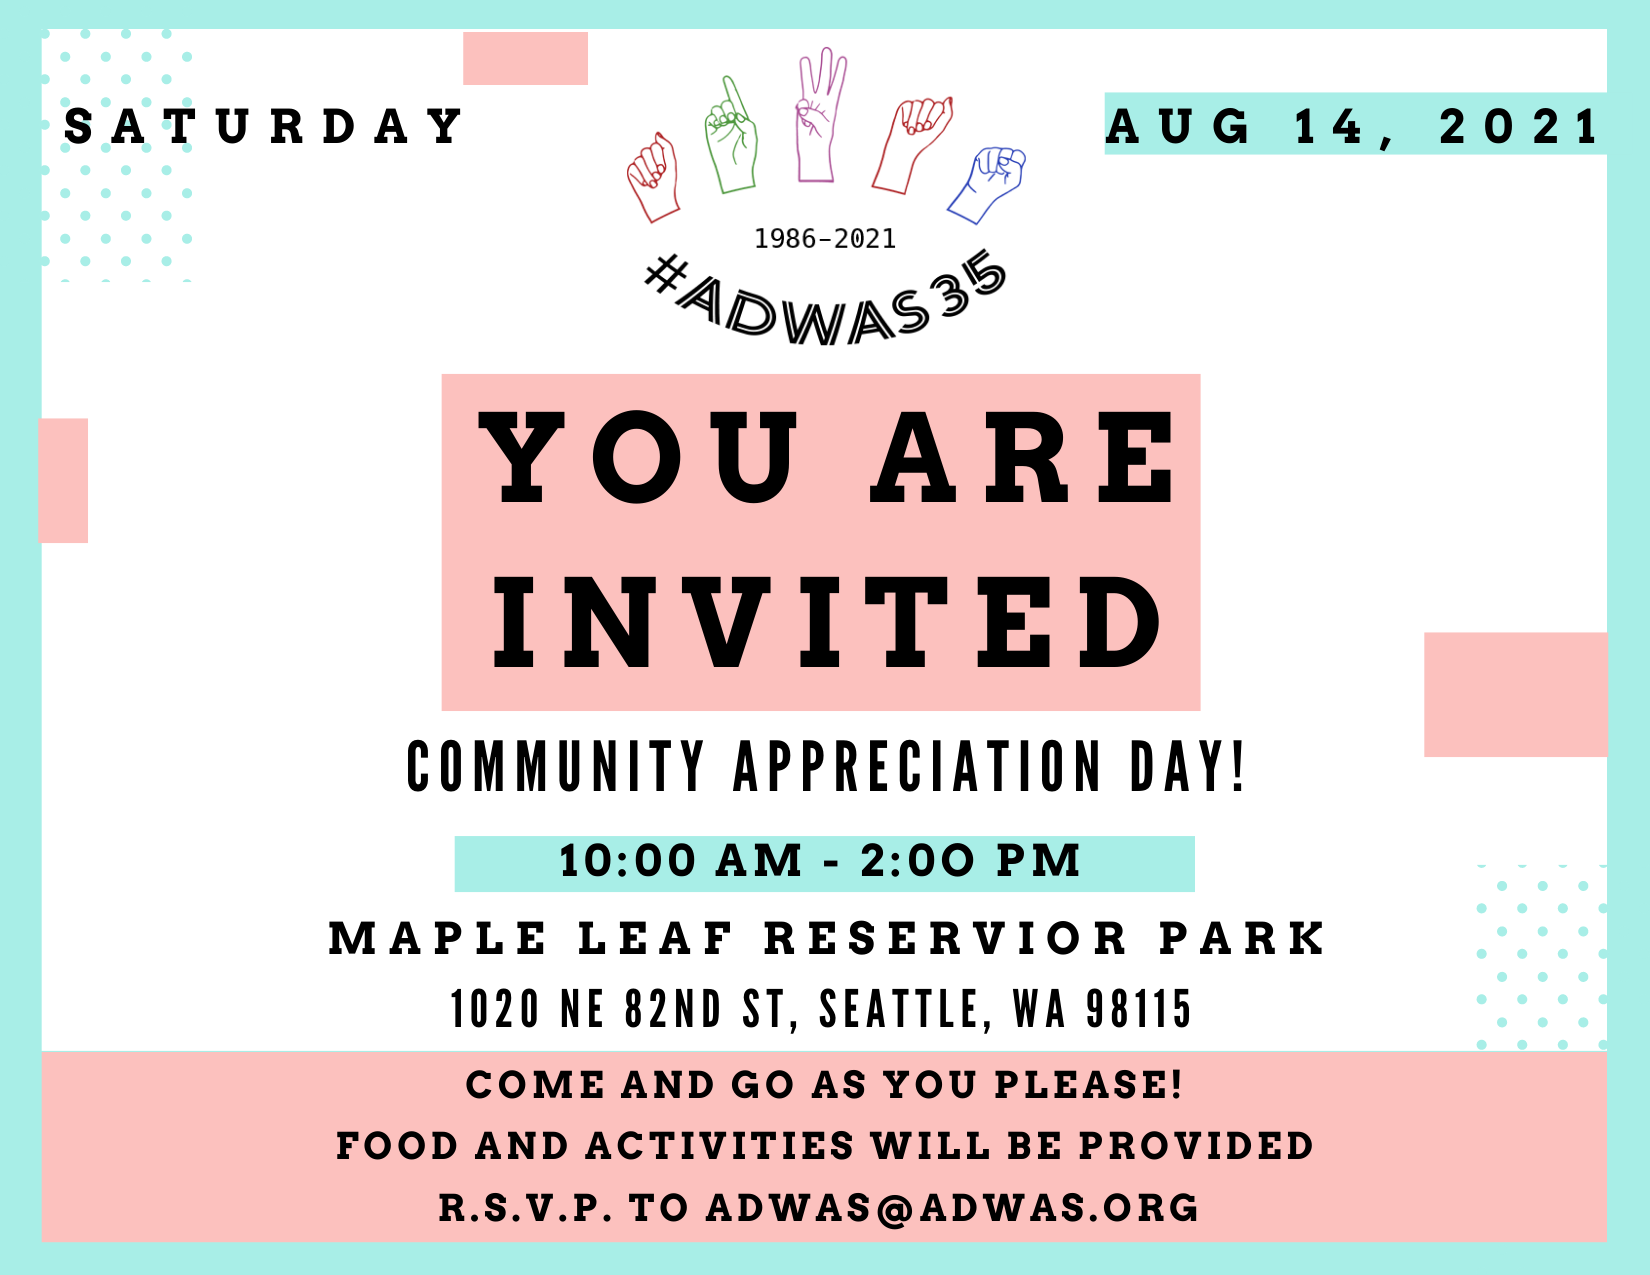 """A blue and pink invitation to Community Appreciation Day. At the top """"Saturday, Aug 14, 2021"""".In big bold letters """"YOU ARE INVITED"""".  Underneath that """"Community Appreciation Day! / 10:00am-2:00pm / Maple Leaf Reservoir Park / 1020 NE 82nd St, Seattle, WA 98115 / Come and go as you please! / Food and activities will be provided / R.S.V.P. to adwas@adwas.org"""